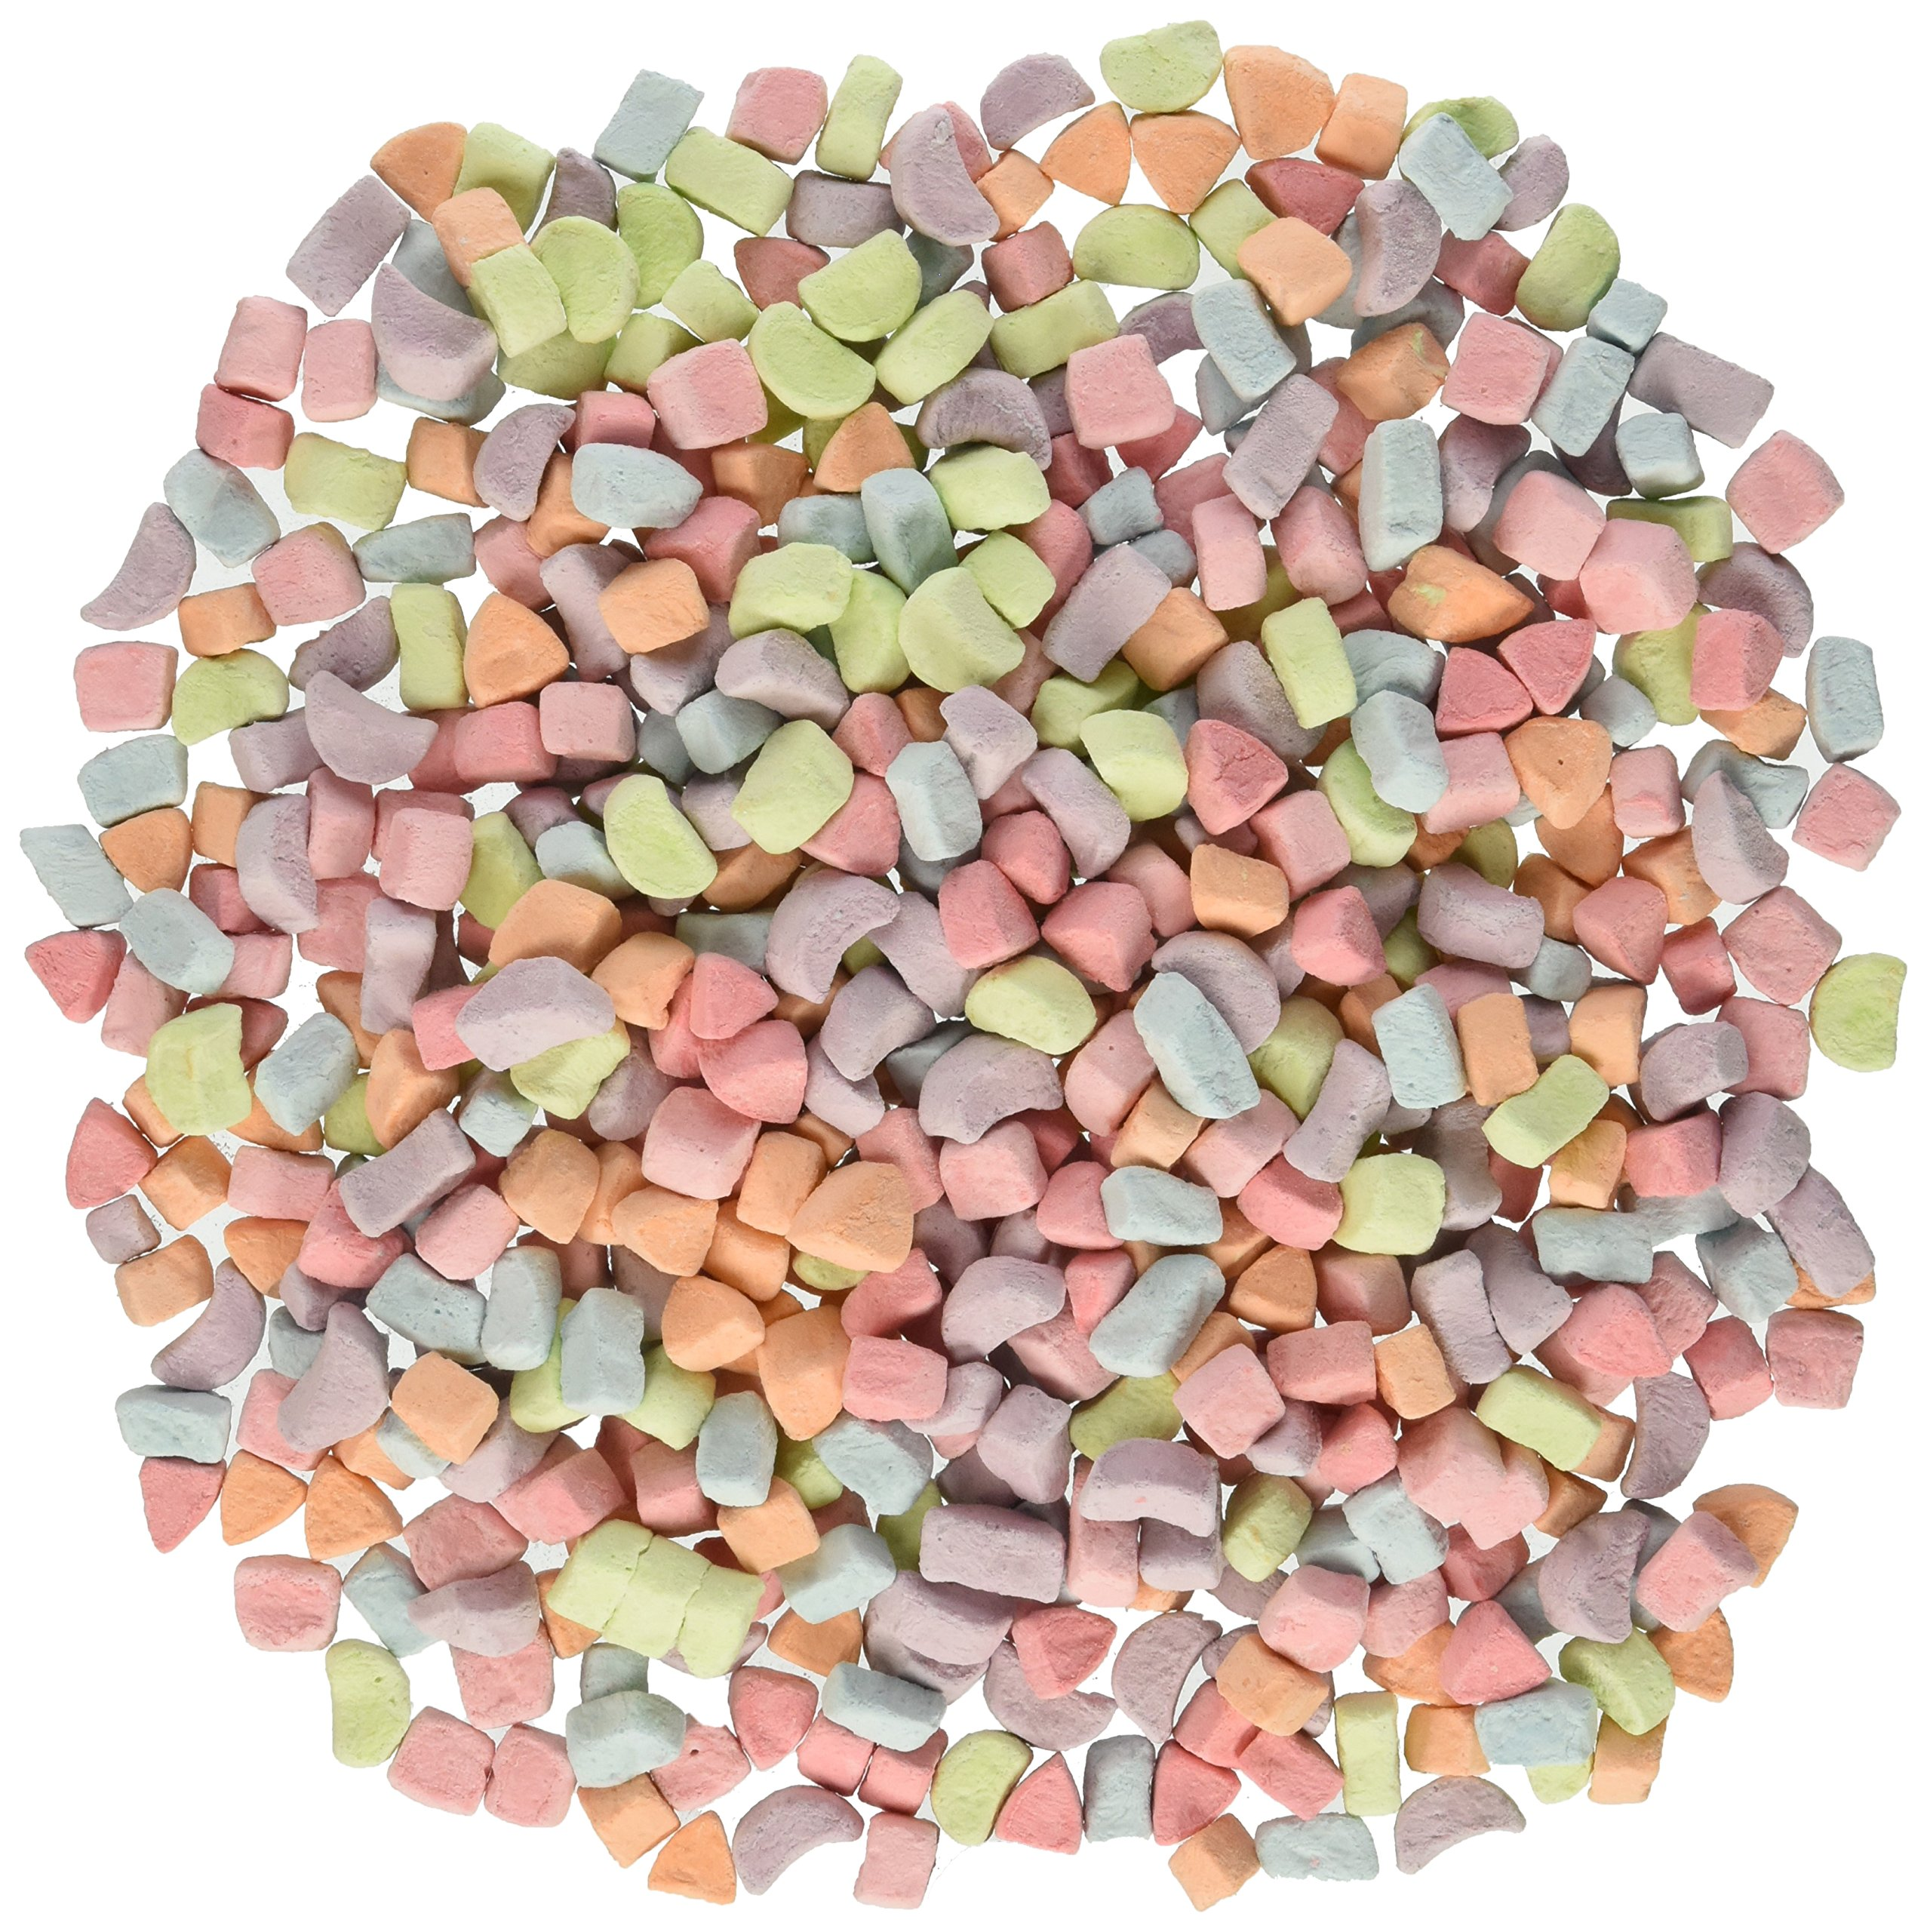 Cereal Marshmallows, 21 oz. by Discount Herbals